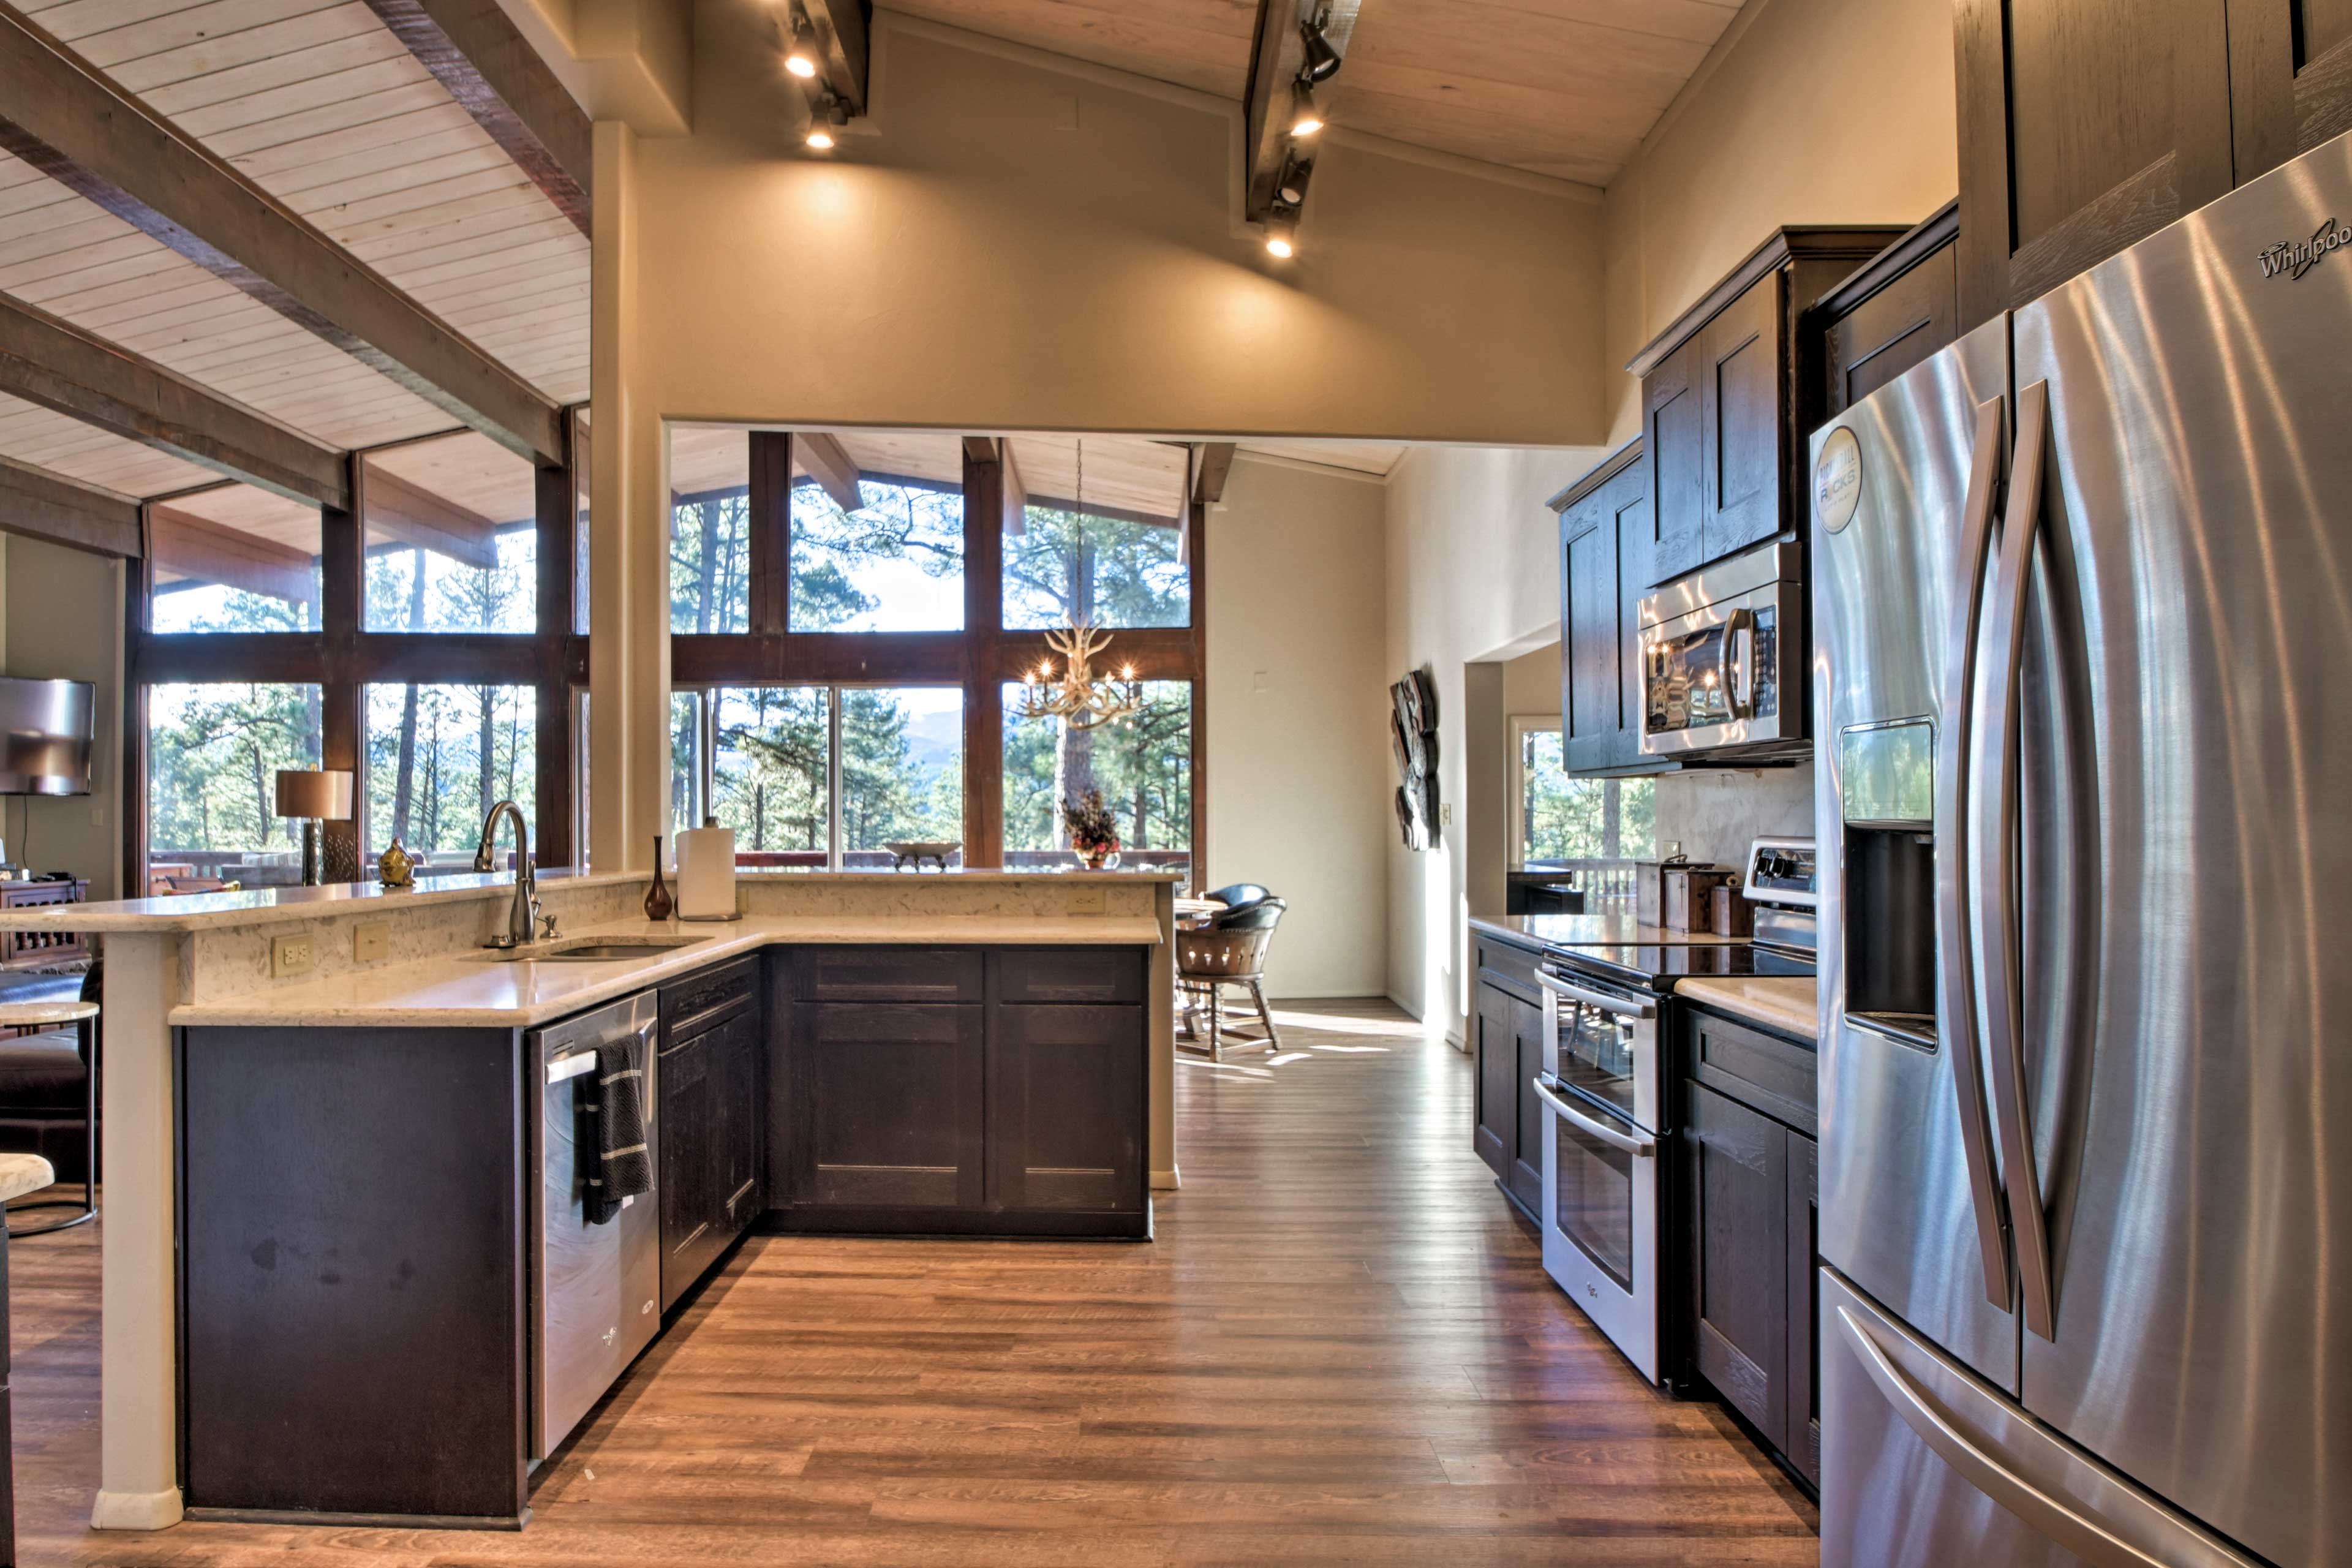 Stainless steel appliances and wooden accents detail the elegant kitchen.